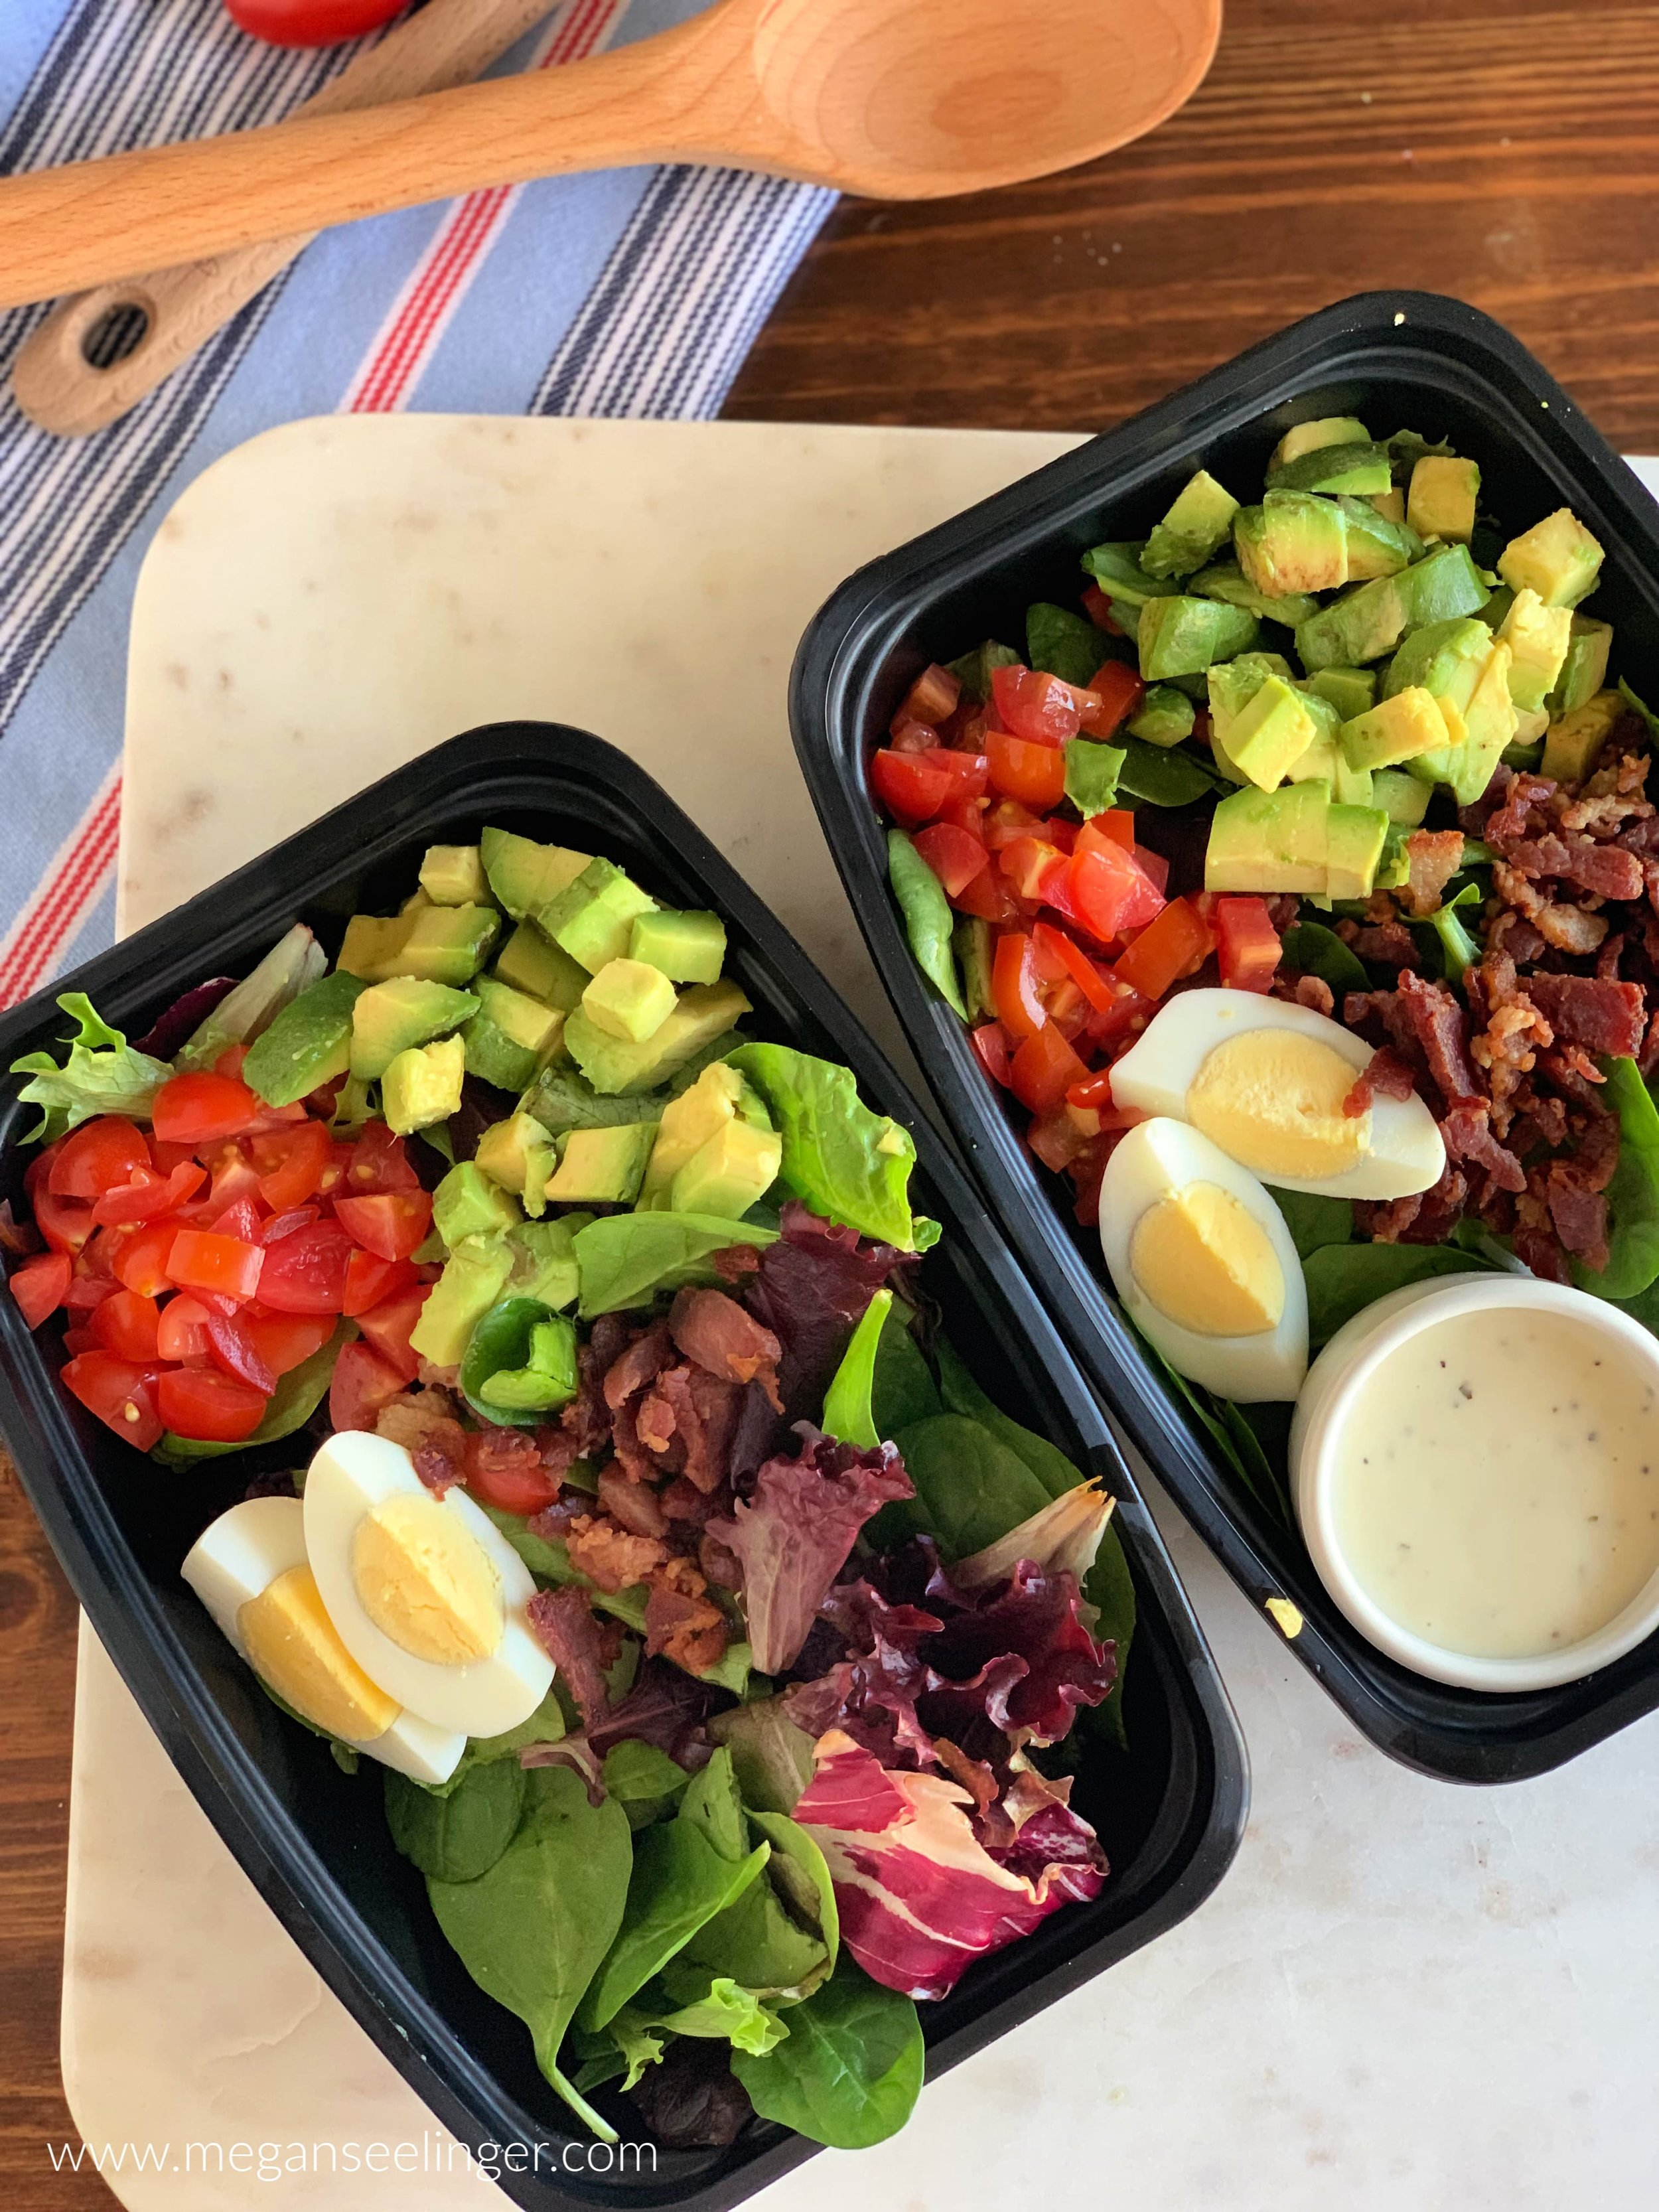 Keto Cobb Salad Recipe - Easy Low Carb Lunch Idea